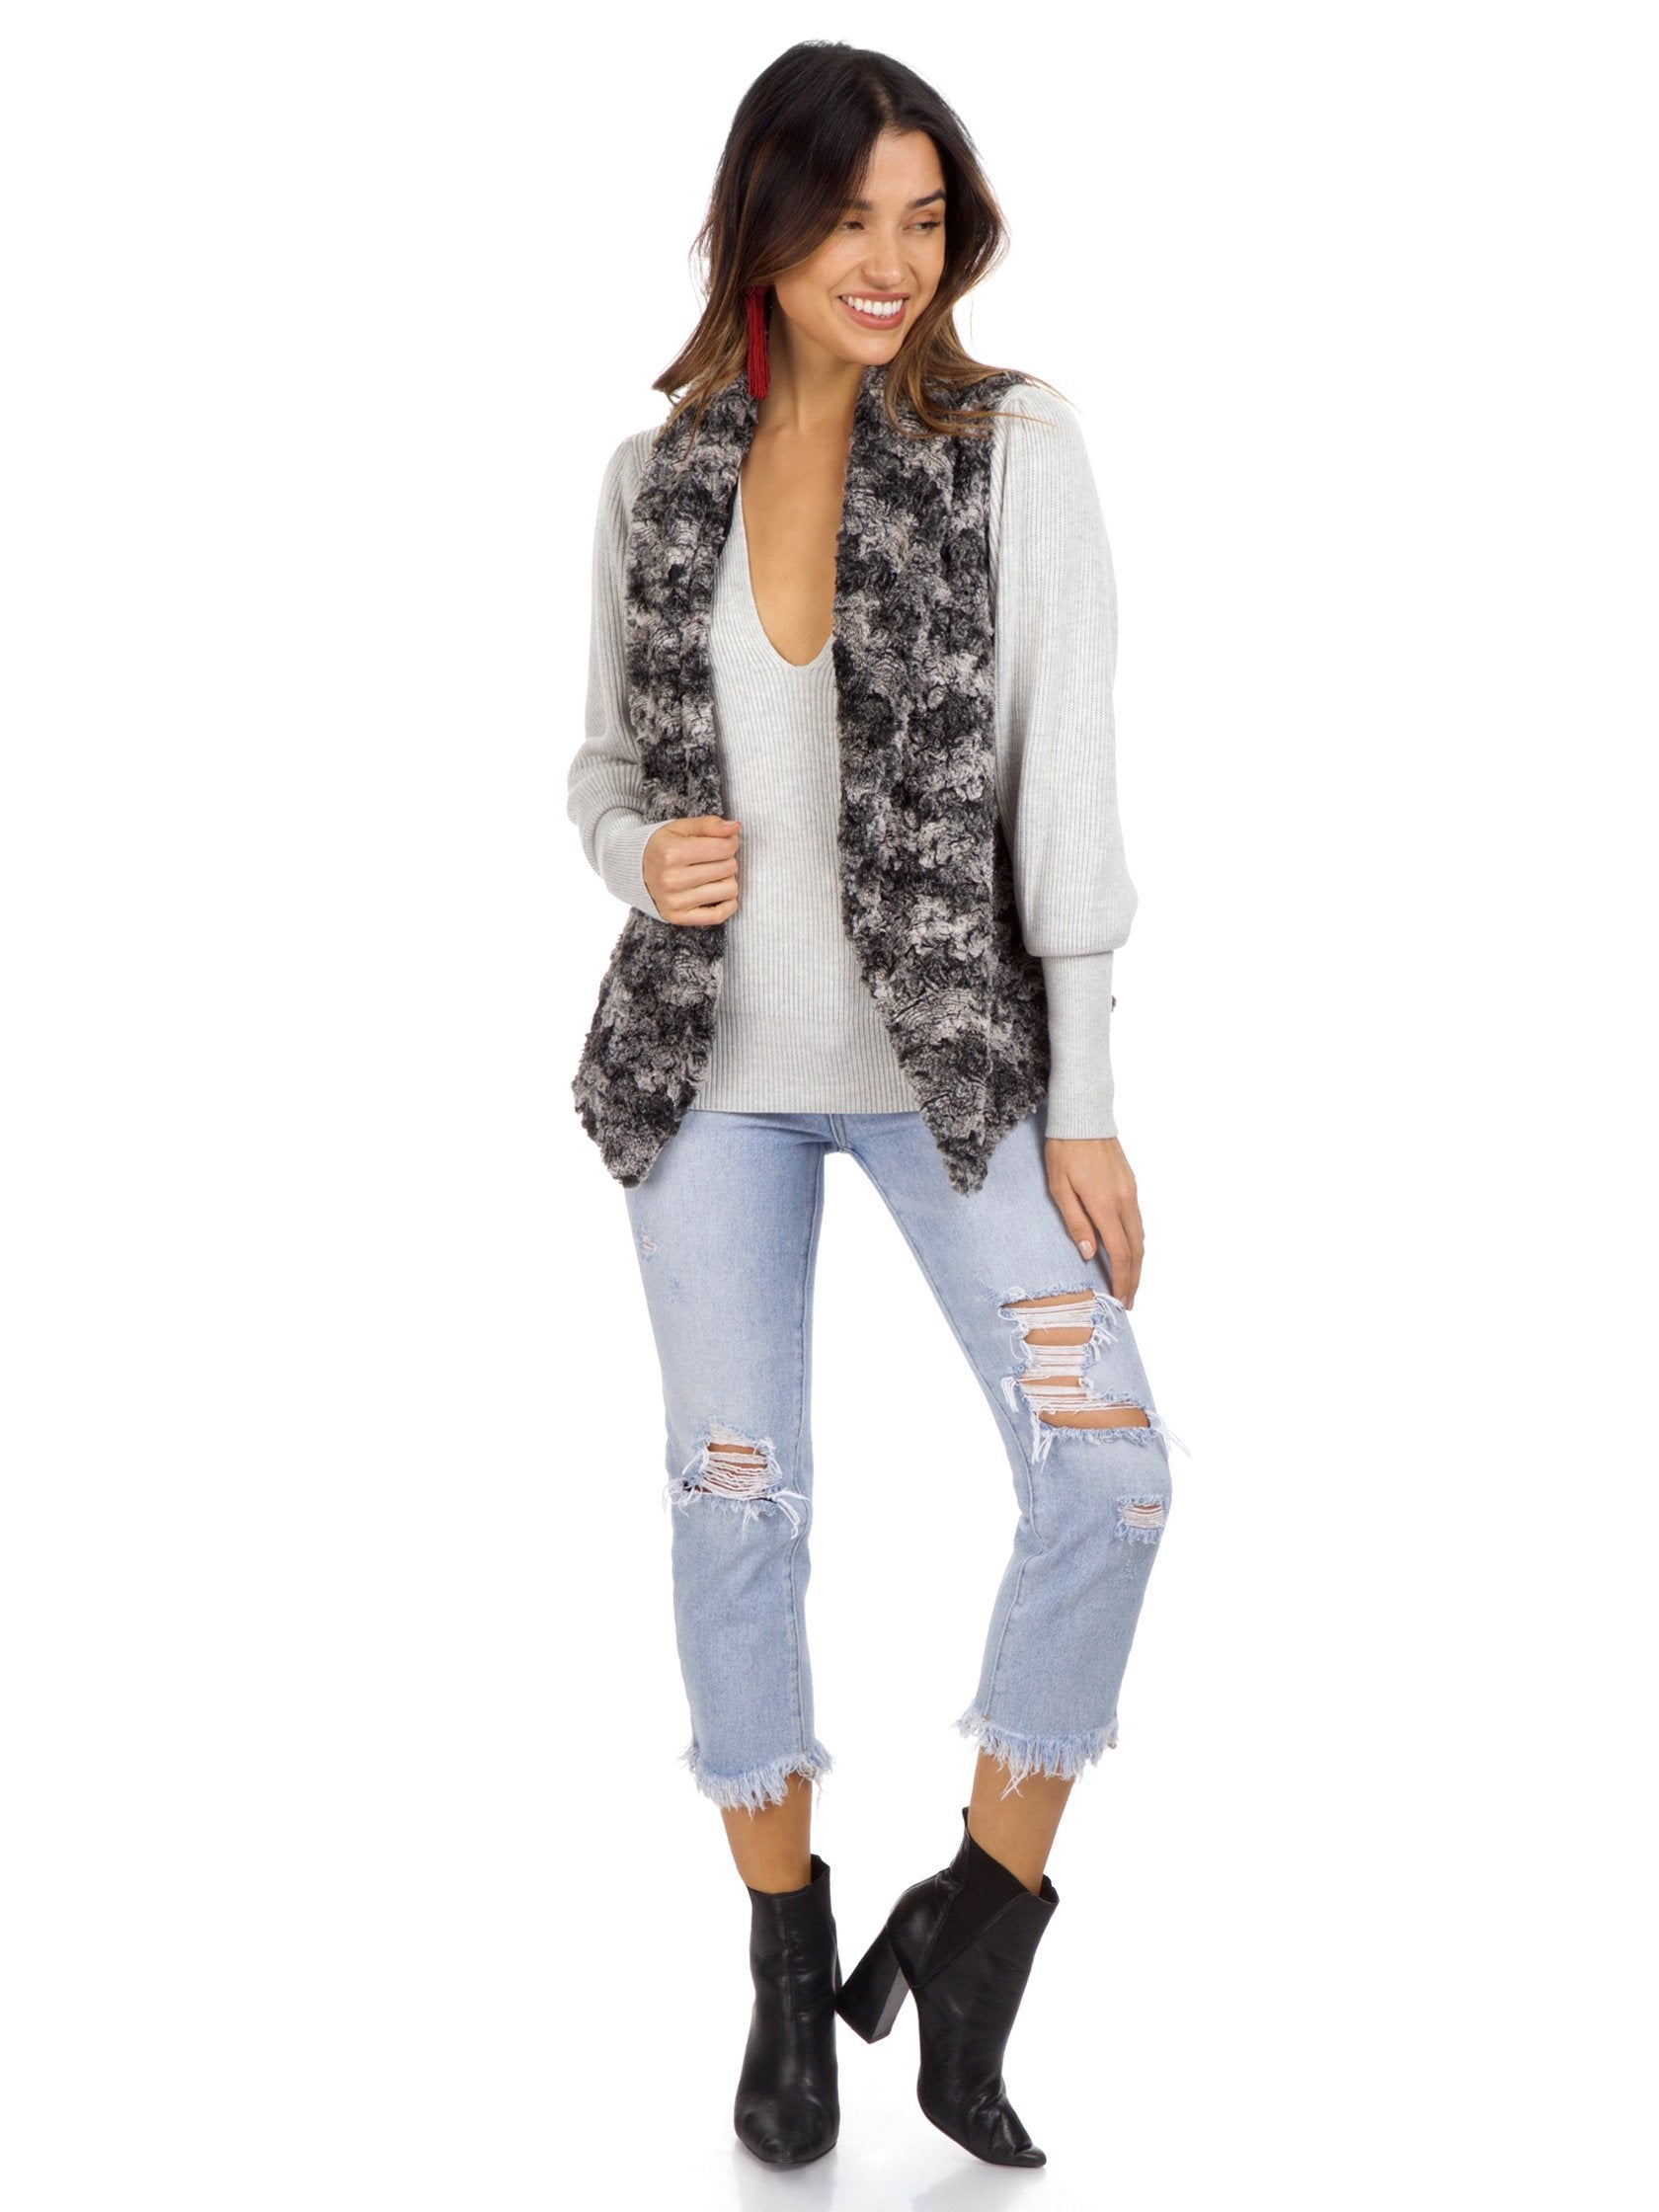 Women outfit in a vest rental from Show Me Your Mumu called Fausta Vest Wolfpack Faux Fur Vest